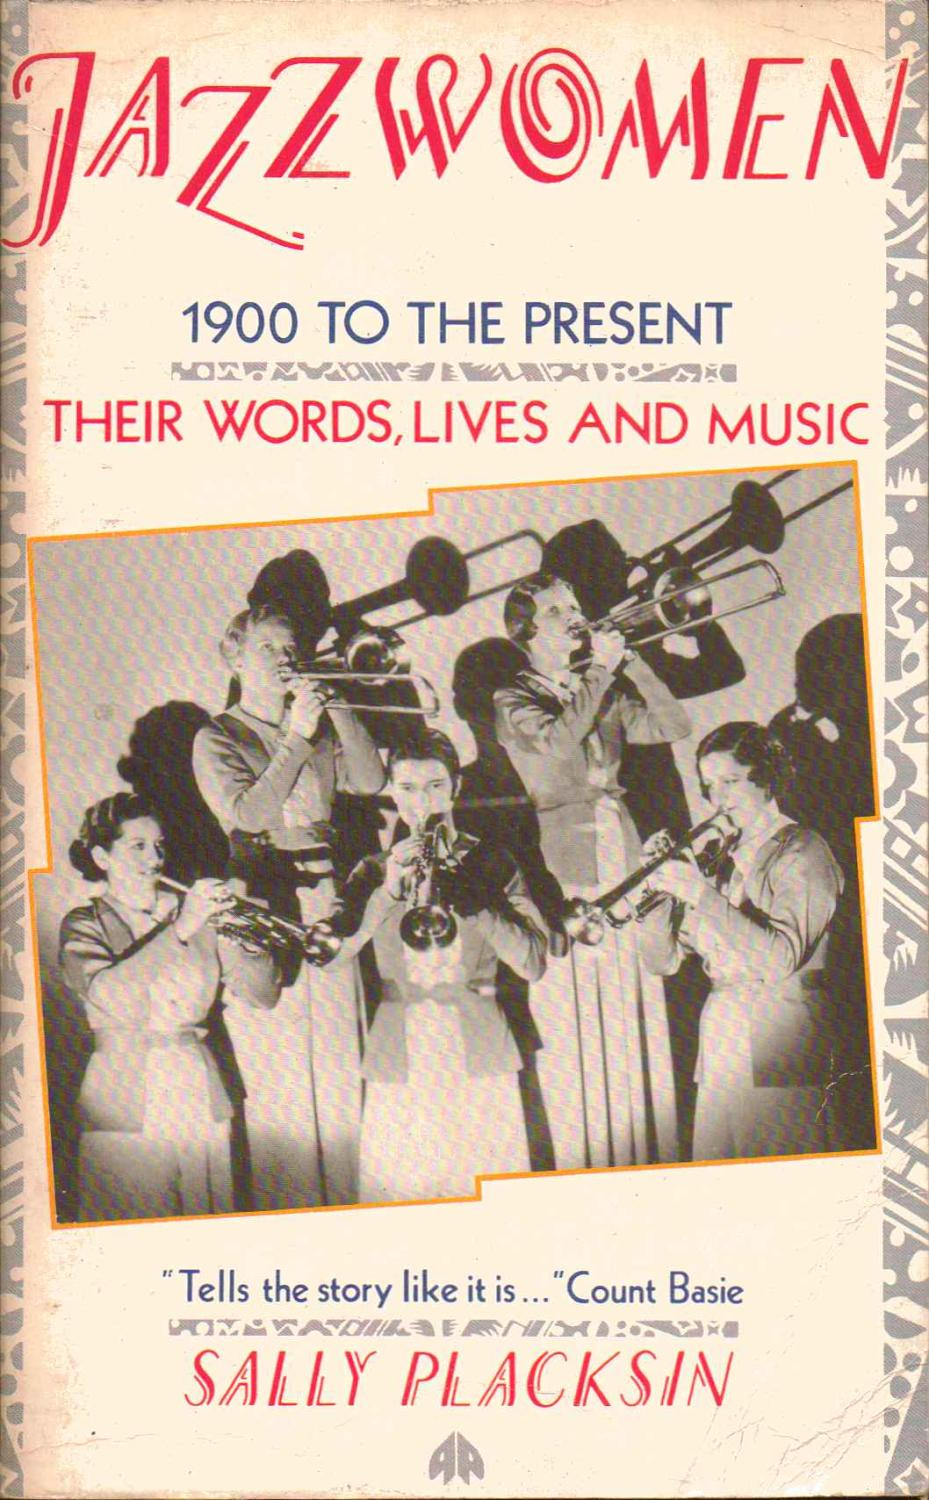 Jazzwomen : 1900 to the Present: Their Words, Lives and Music - Sally Placksin